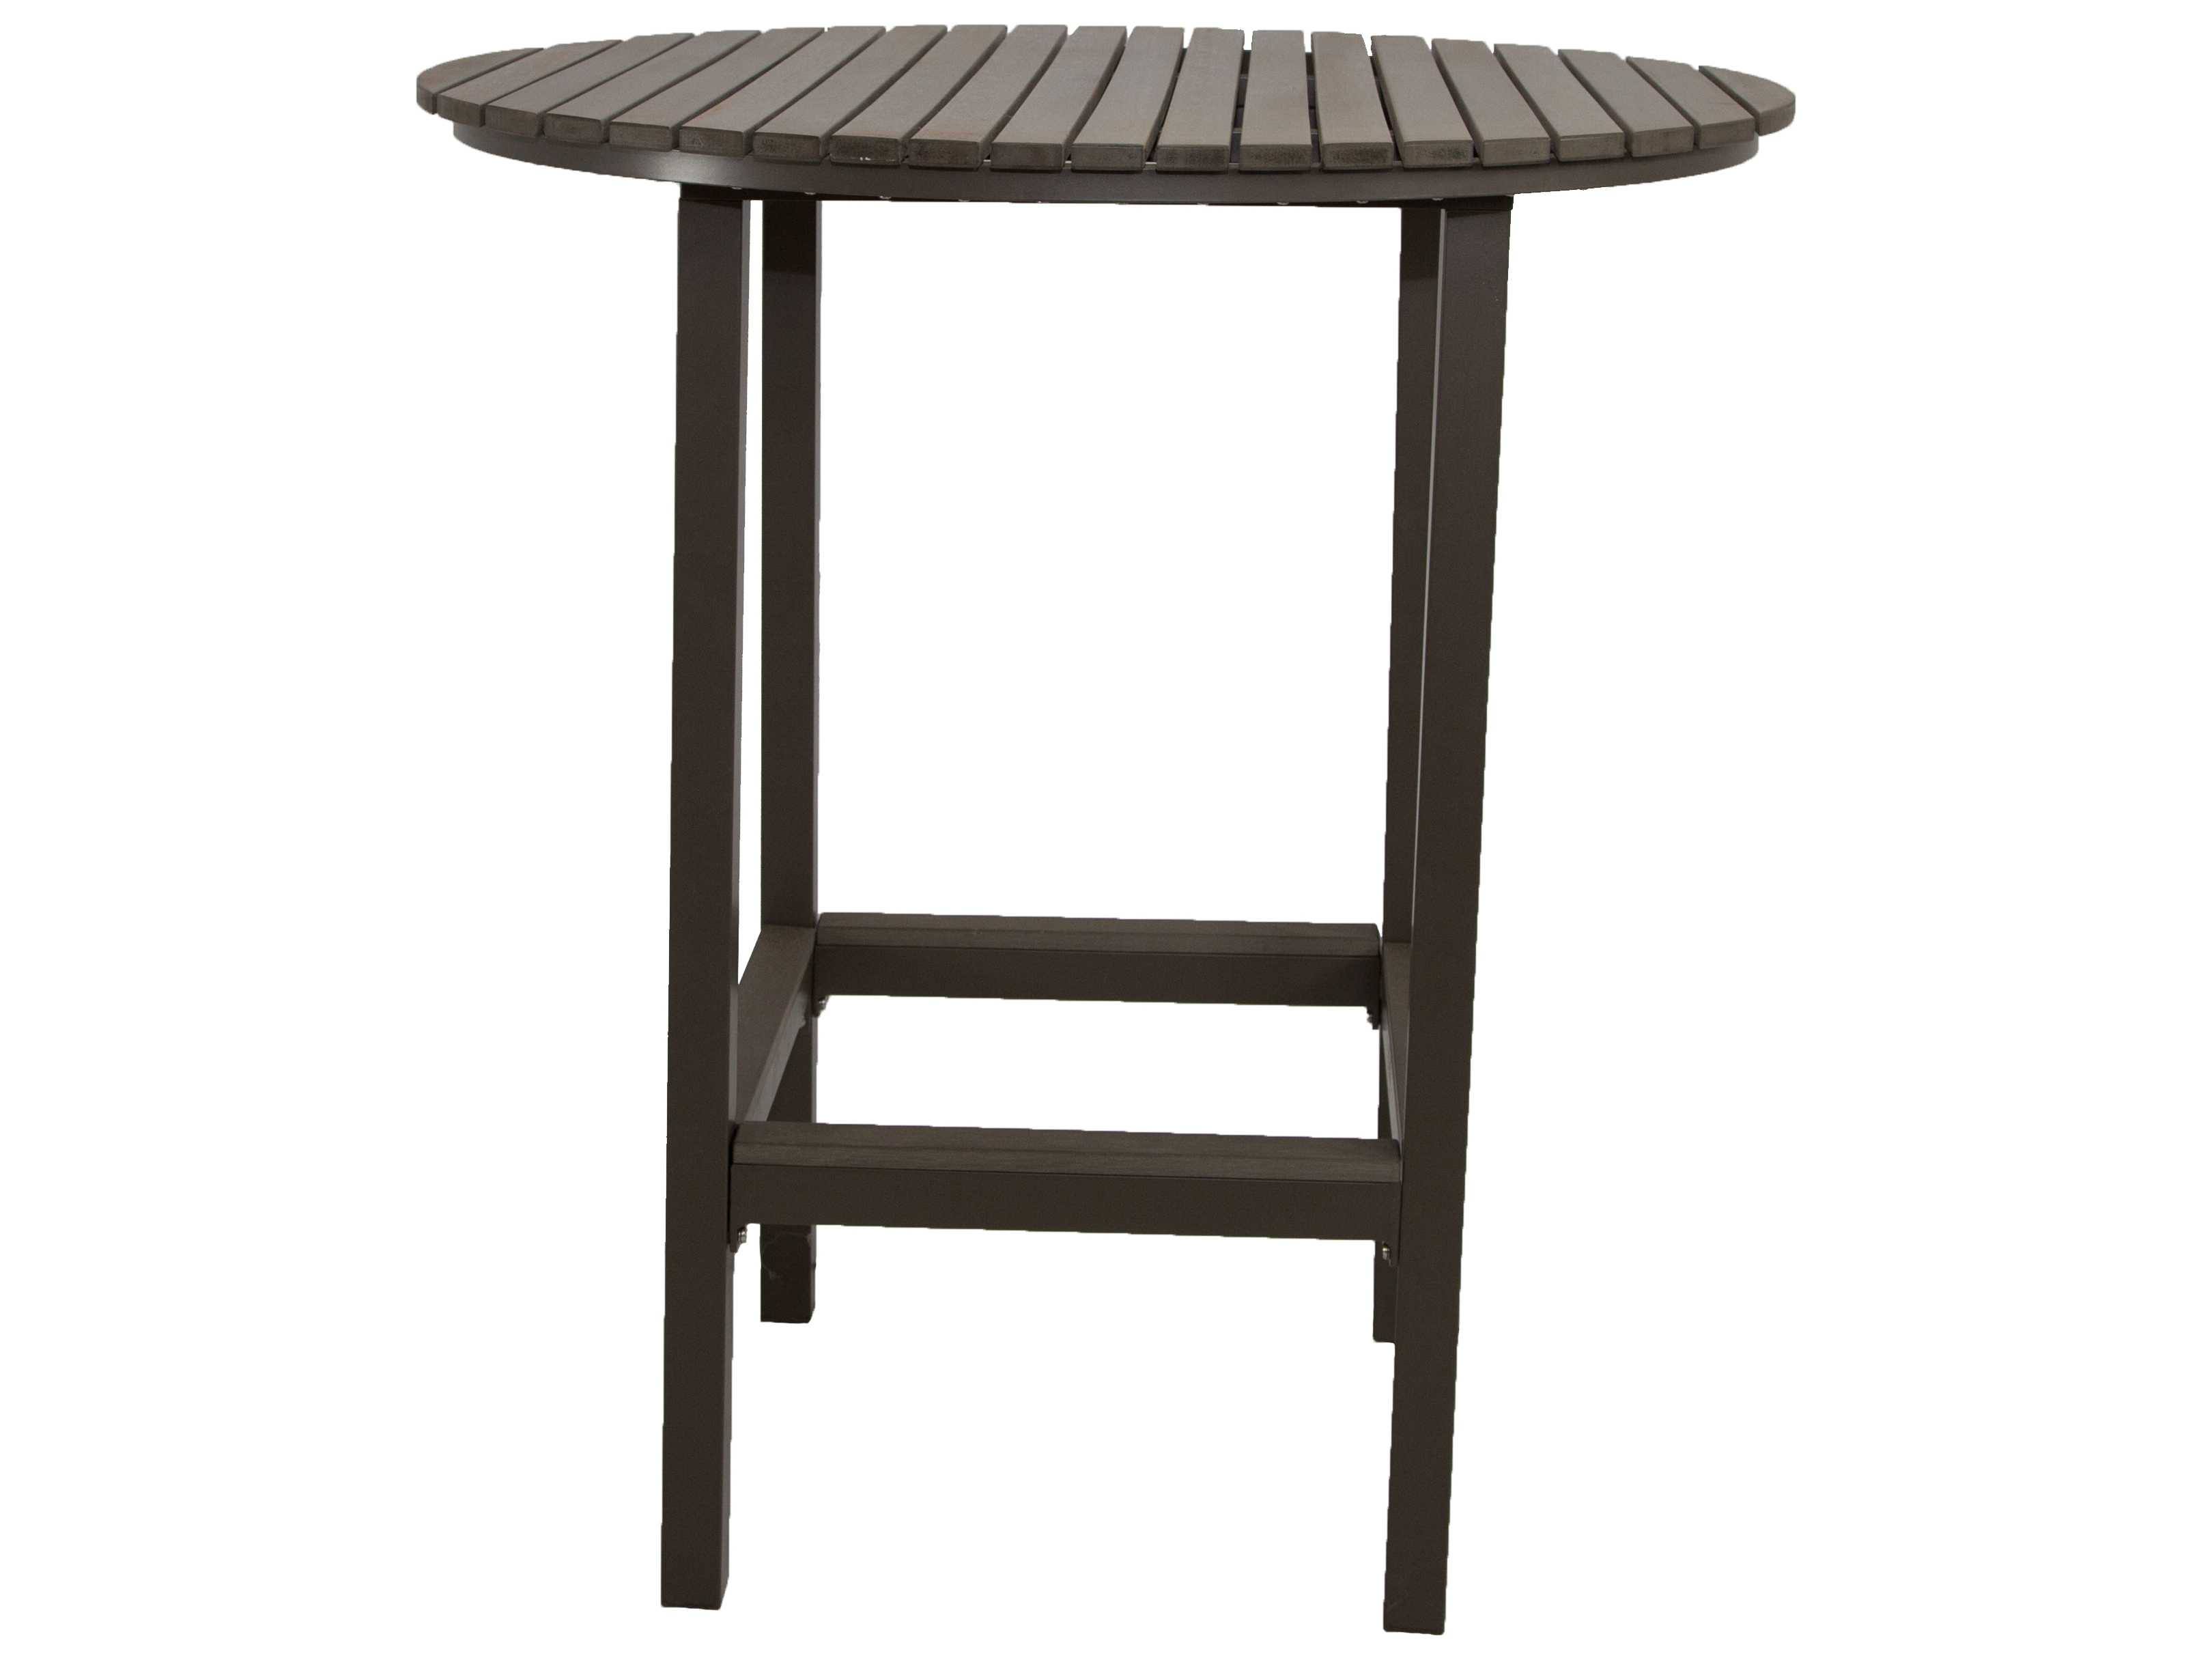 patio heaven riviera aluminum 36 round bar table round patr2270ht4. Black Bedroom Furniture Sets. Home Design Ideas